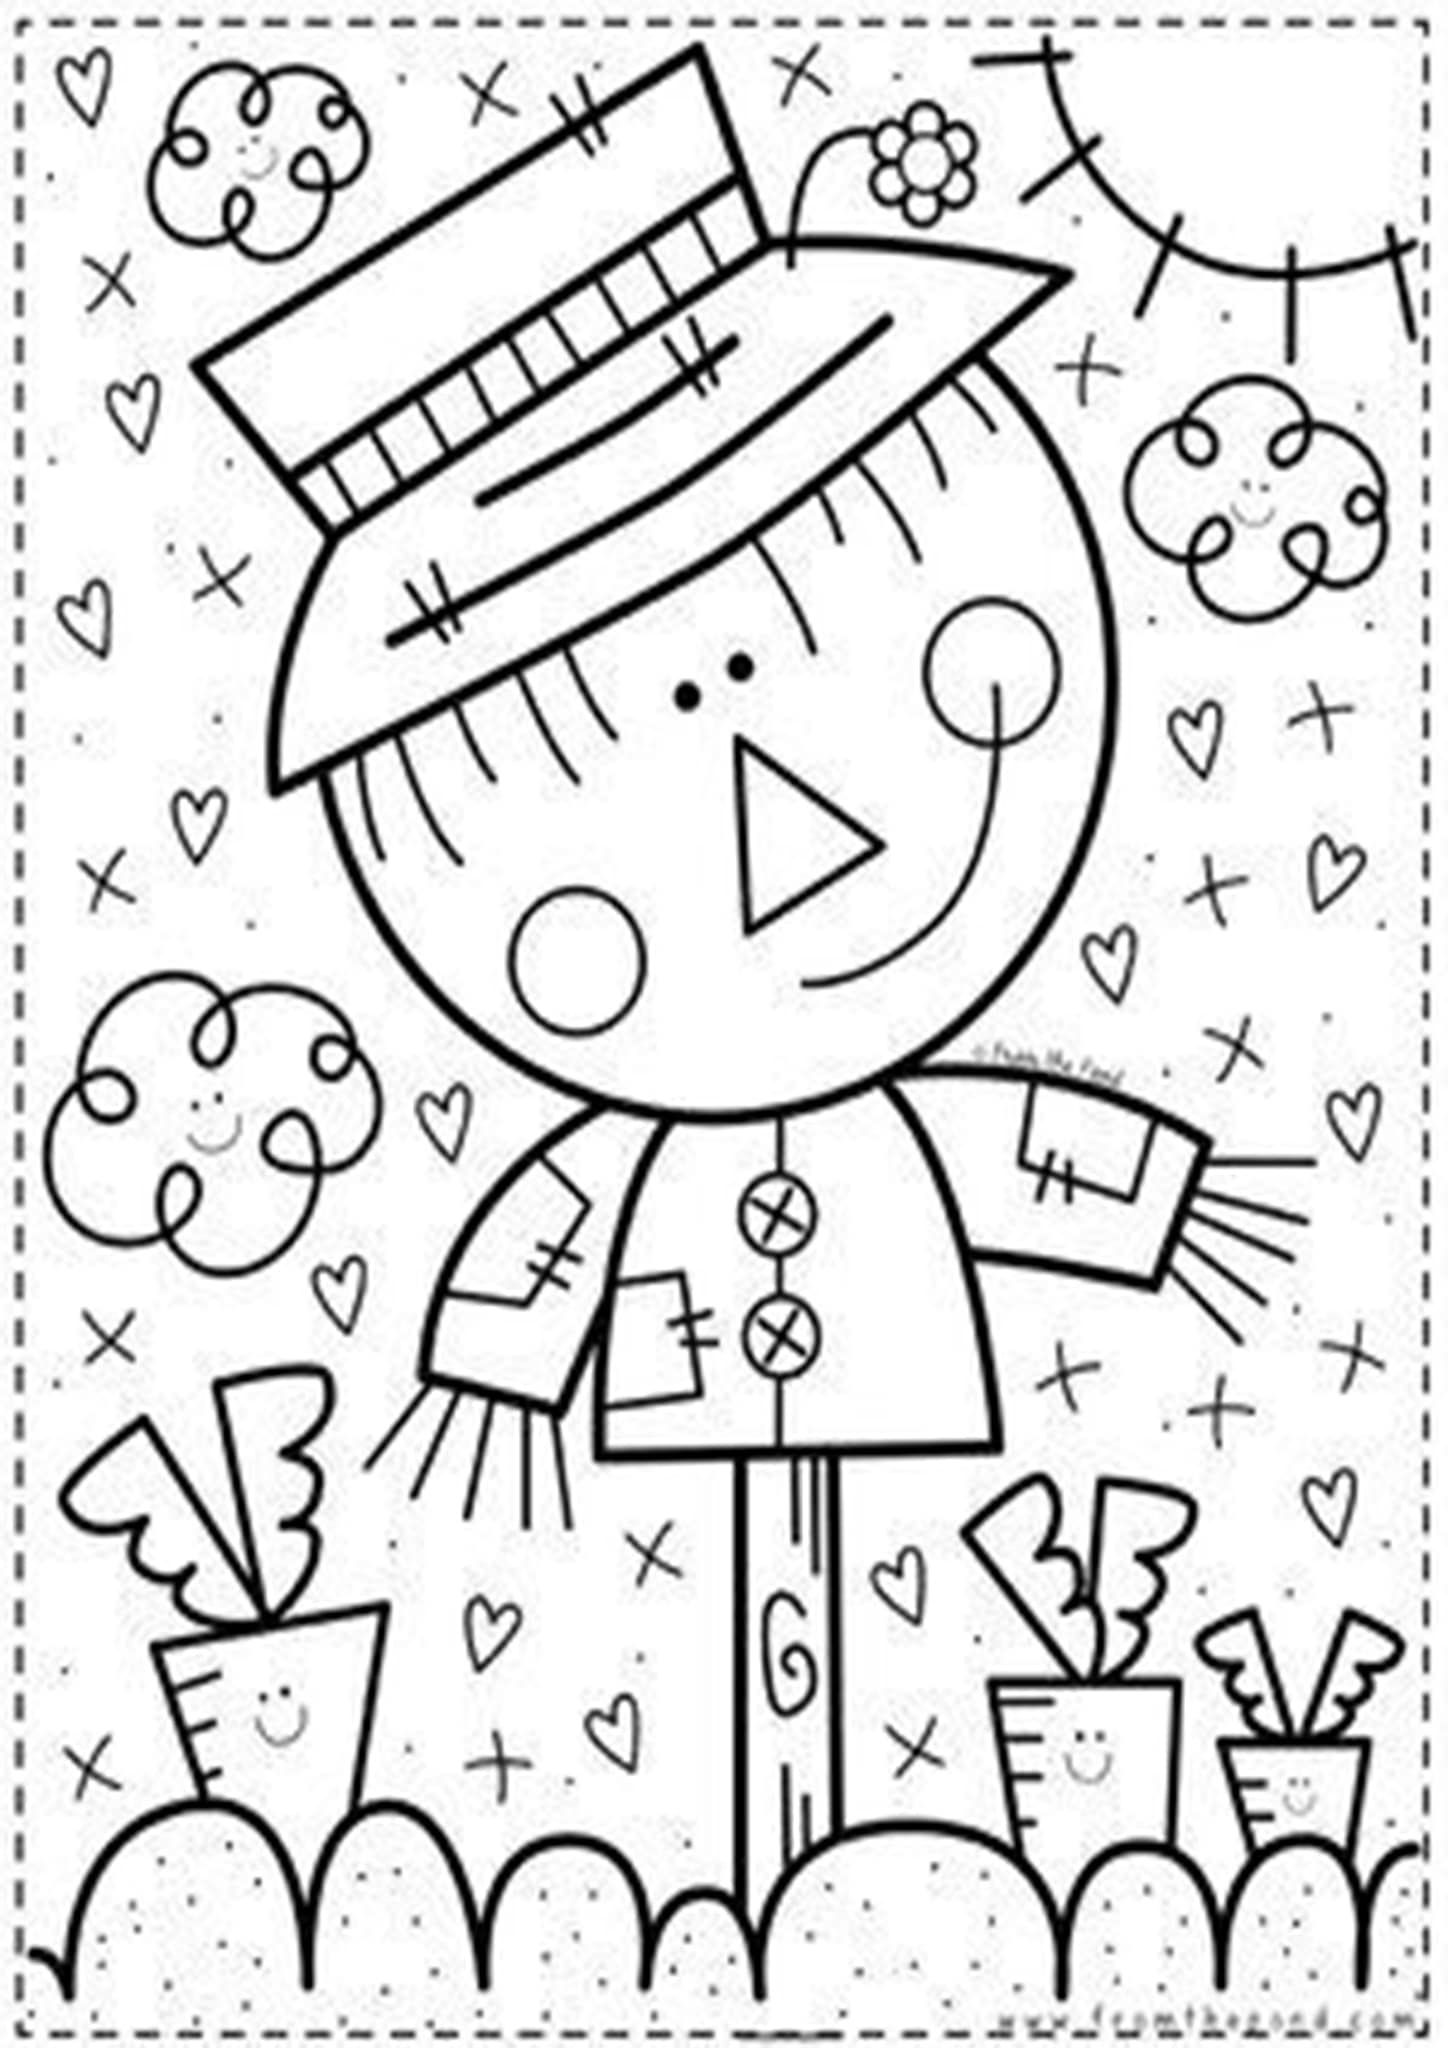 Free Easy To Print Cute Coloring Pages Fall Coloring Pages Cute Coloring Pages Coloring Pages